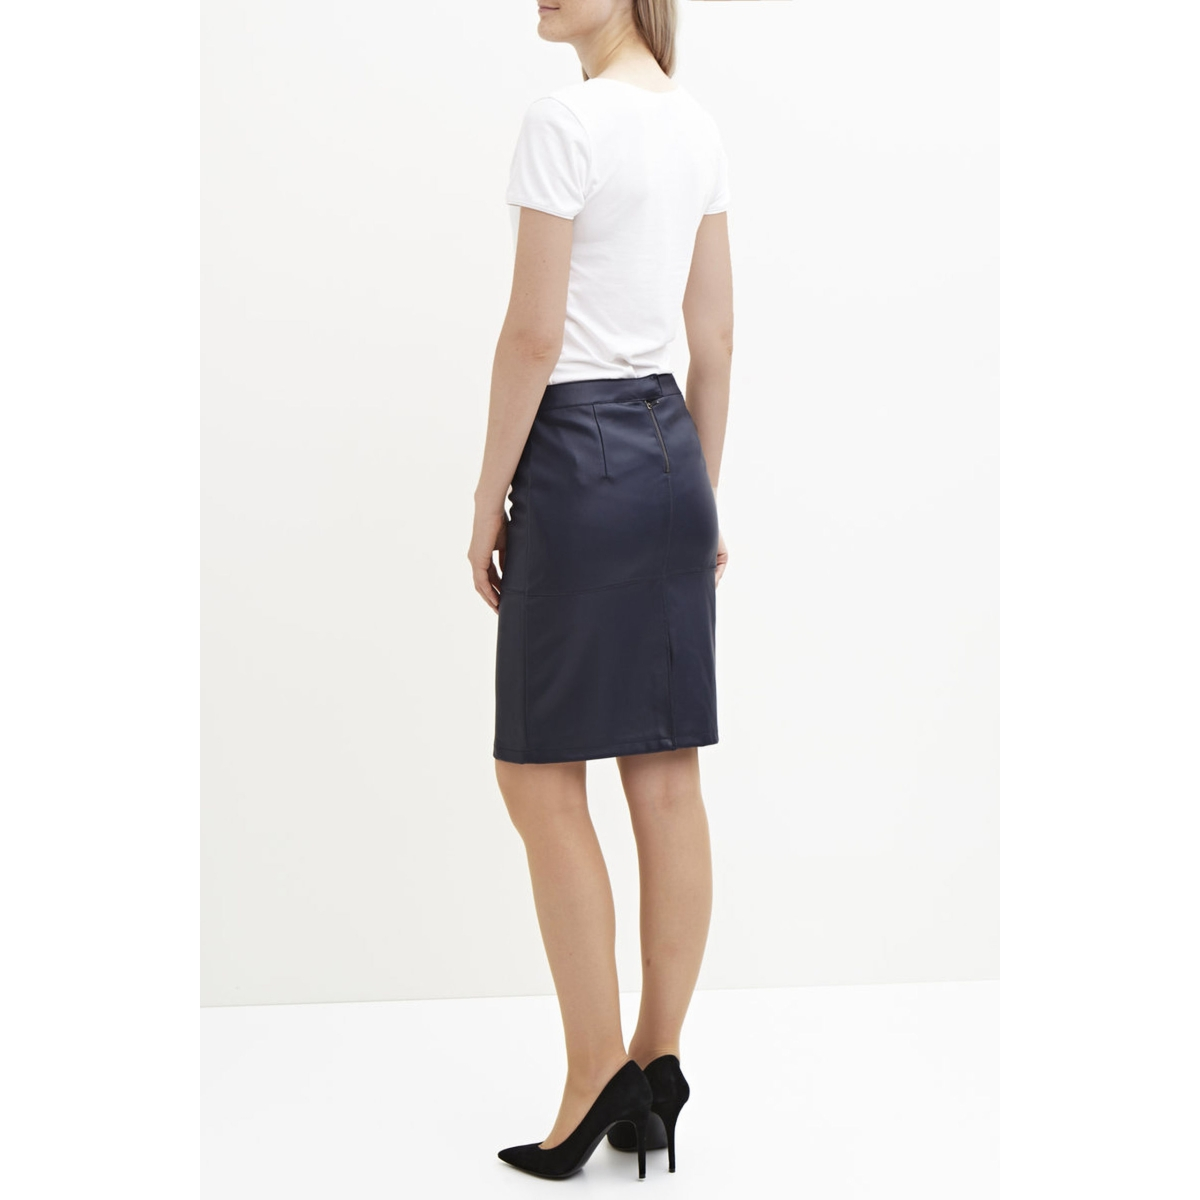 vipen new skirt-noos 14033417 vila rok total eclipse